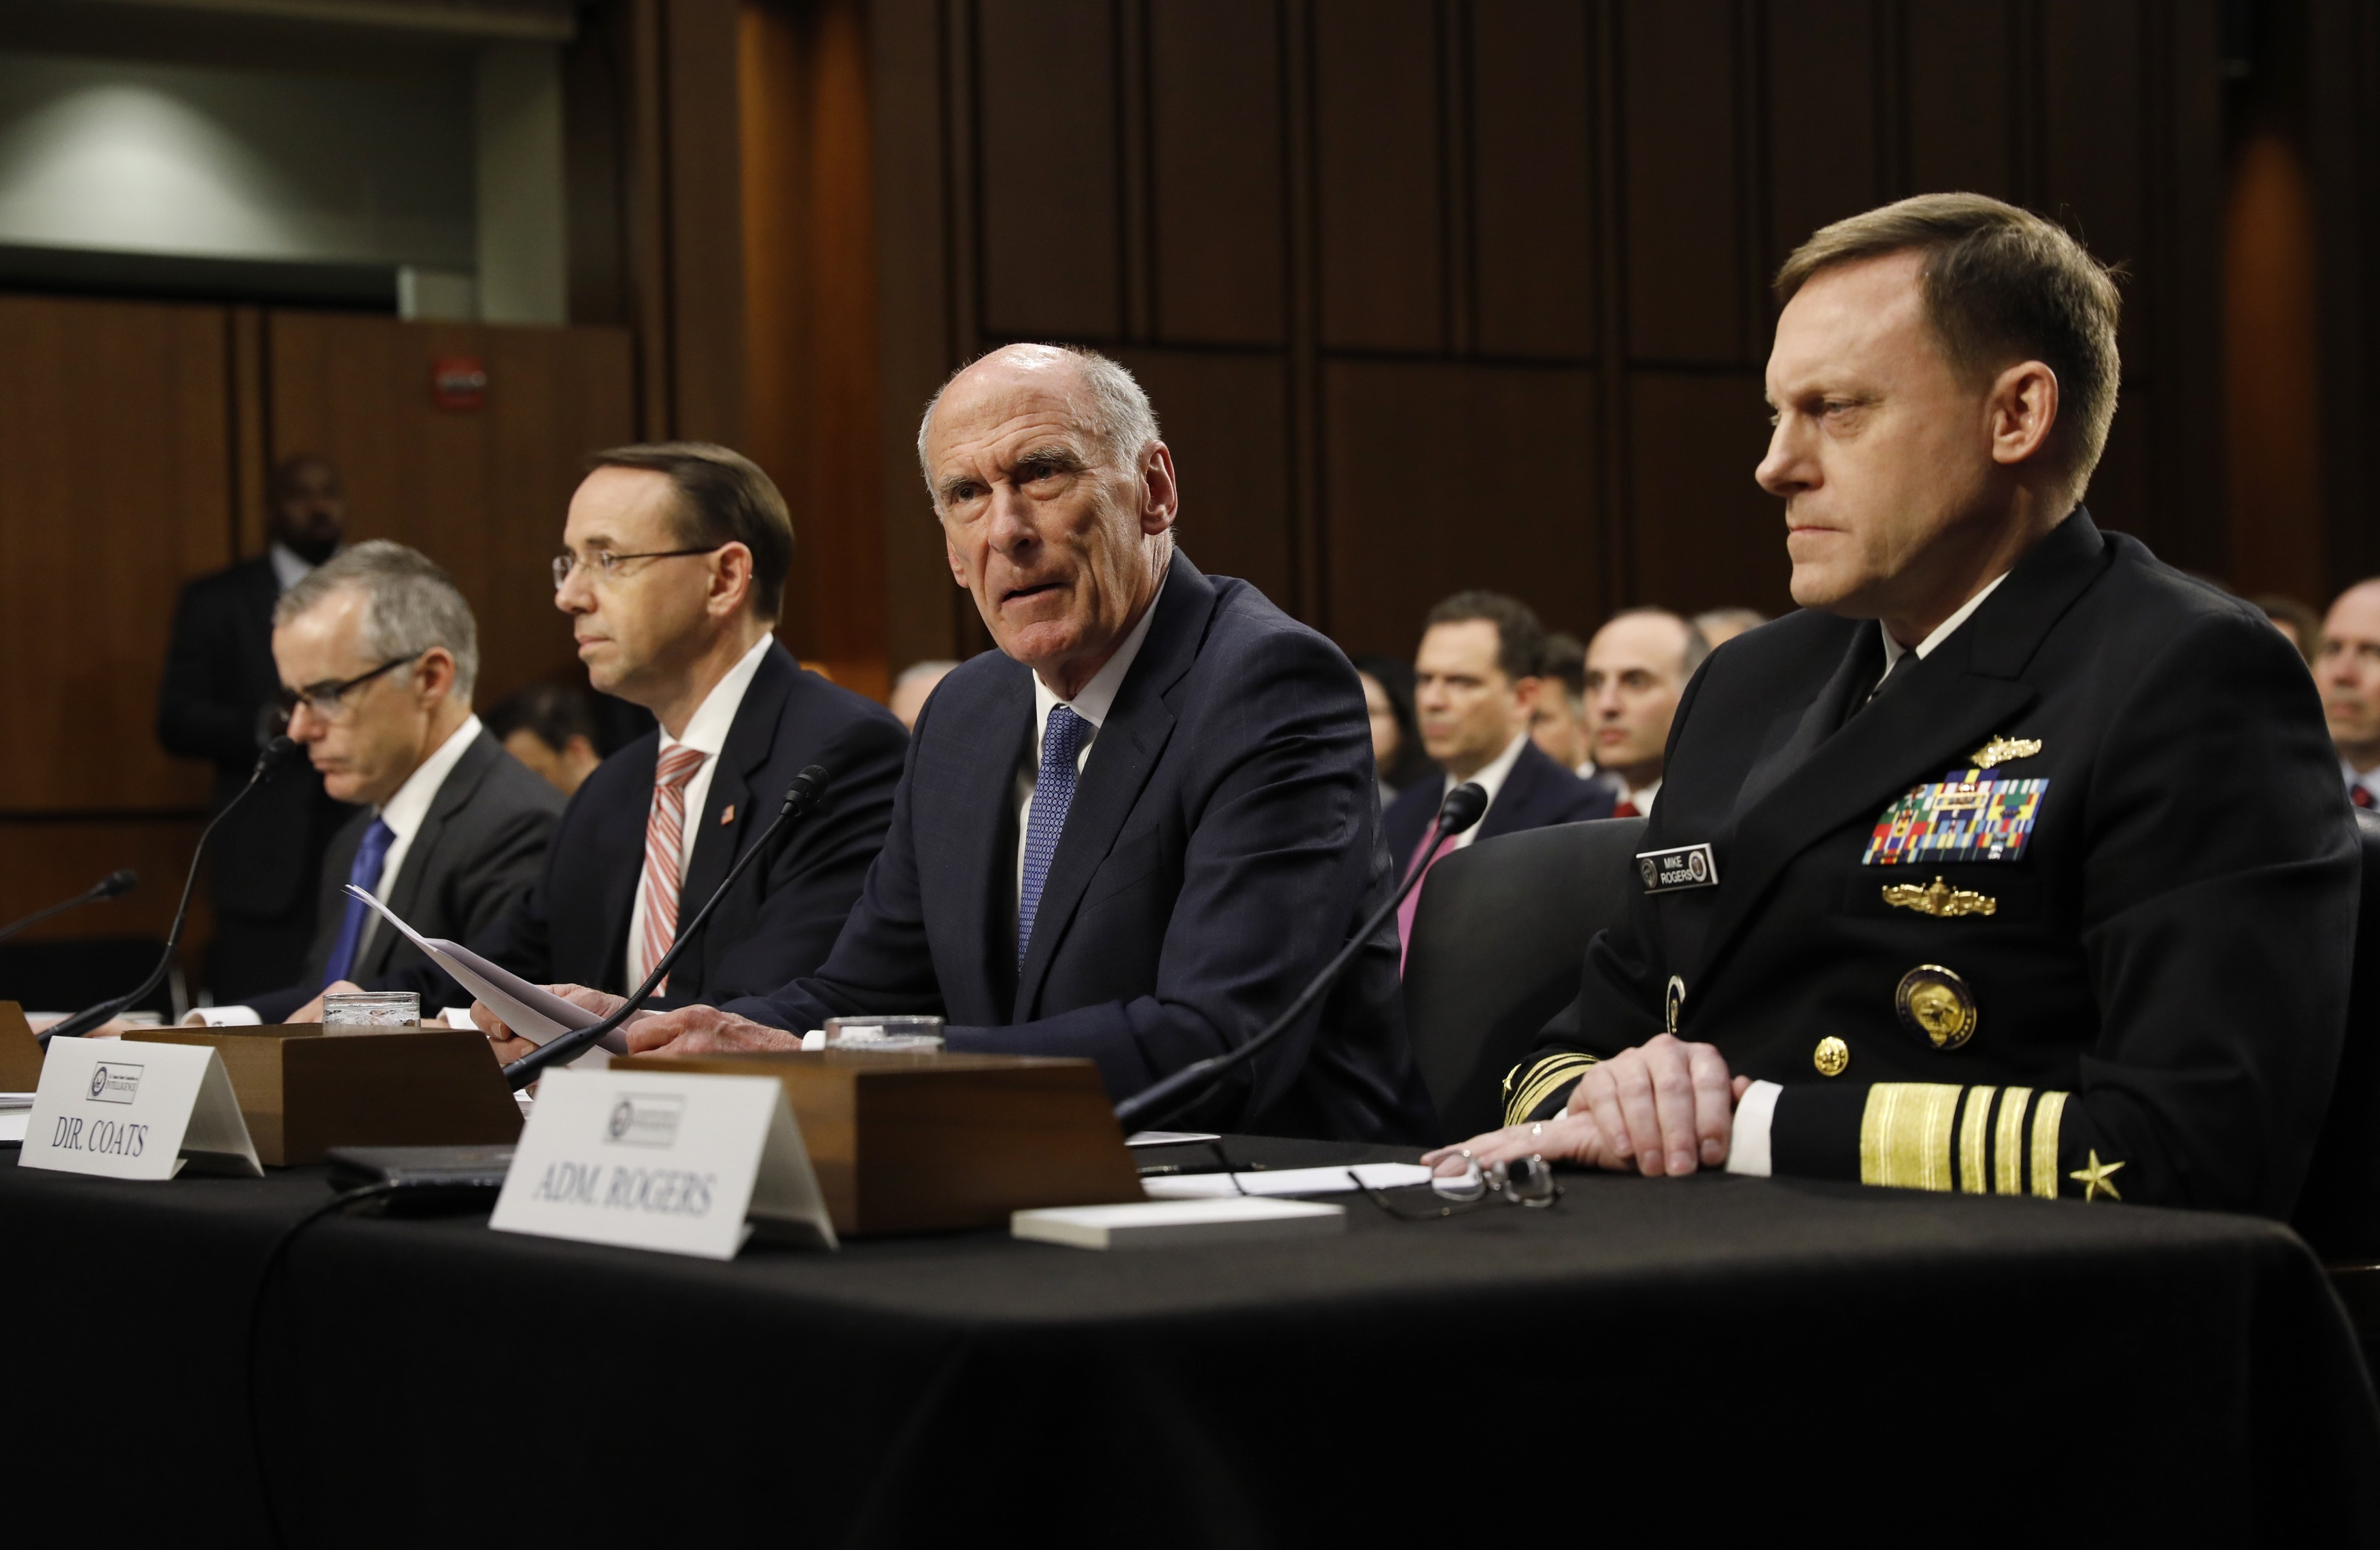 Director of National Intelligence Daniel Coats (2nd-R) testifies as he appears alongside acting FBI Director Andrew McCabe (L), Deputy Attorney General Rod Rosenstein (2nd-L) and National Security Agency Director Michael Rogers (R) at a Senate Intelligence Committee hearing on the Foreign Intelligence Surveillance Act (FISA) in Washington, U.S., June 7, 2017. REUTERS/Kevin Lamarque